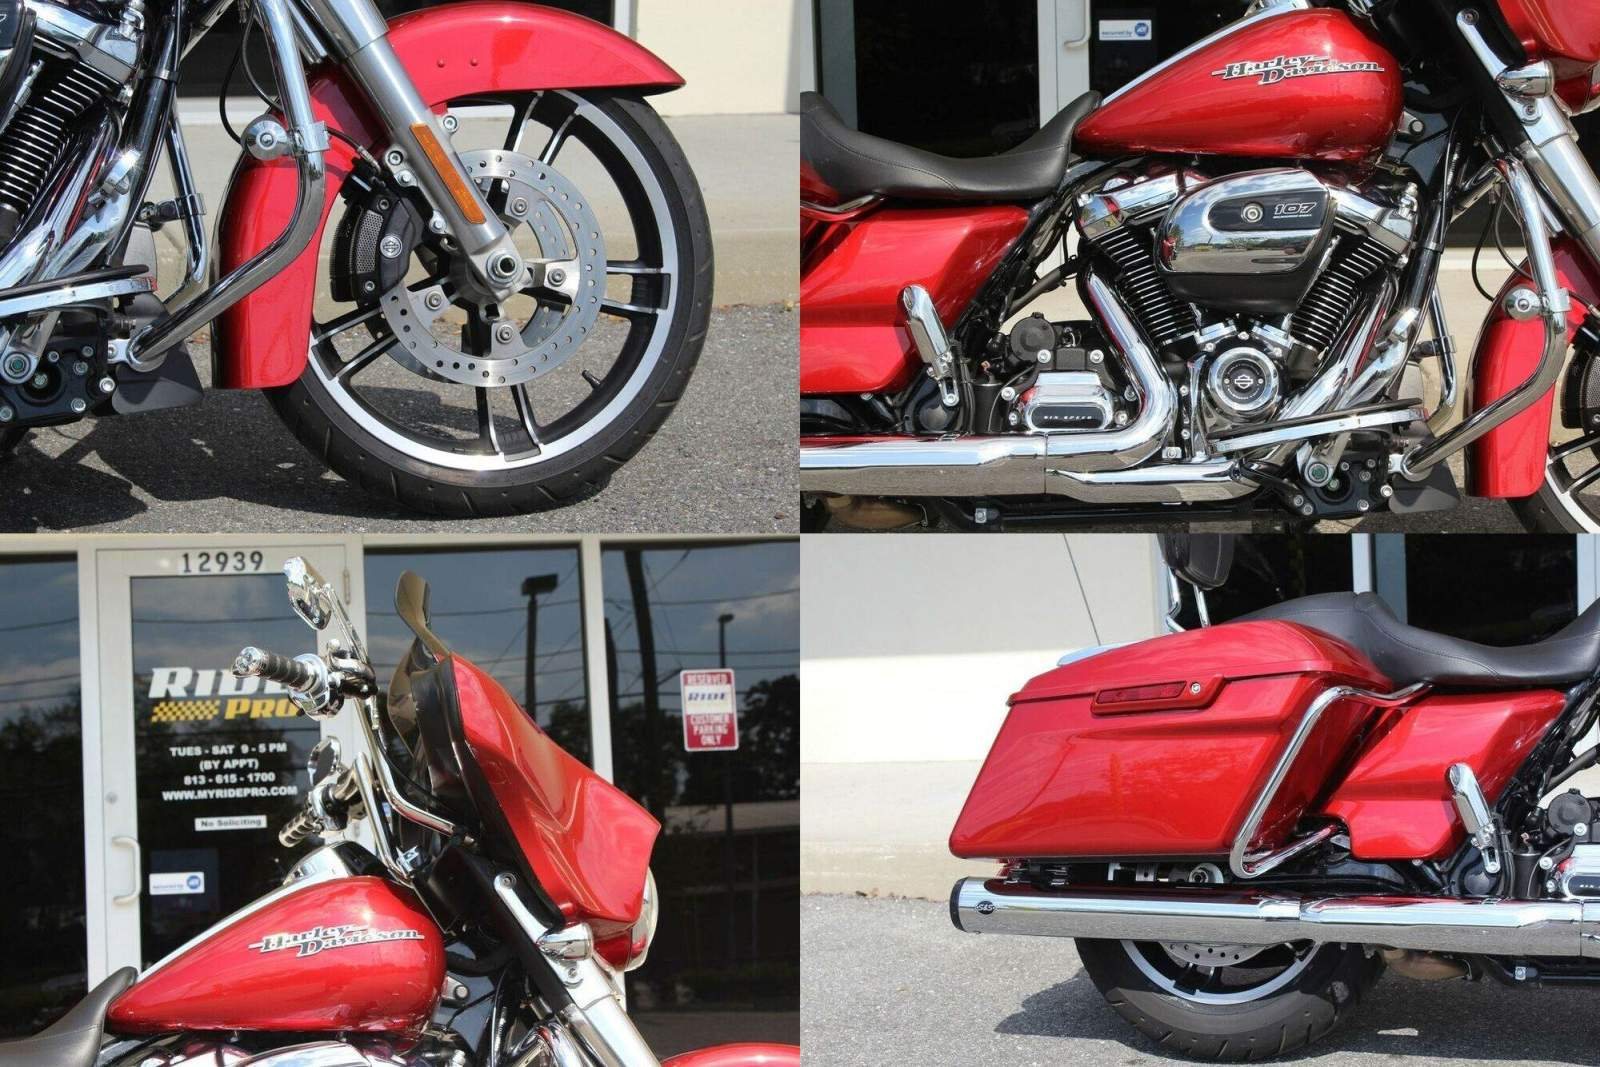 2019 Harley-Davidson Touring Street Glide™ Wicked Red used for sale craigslist